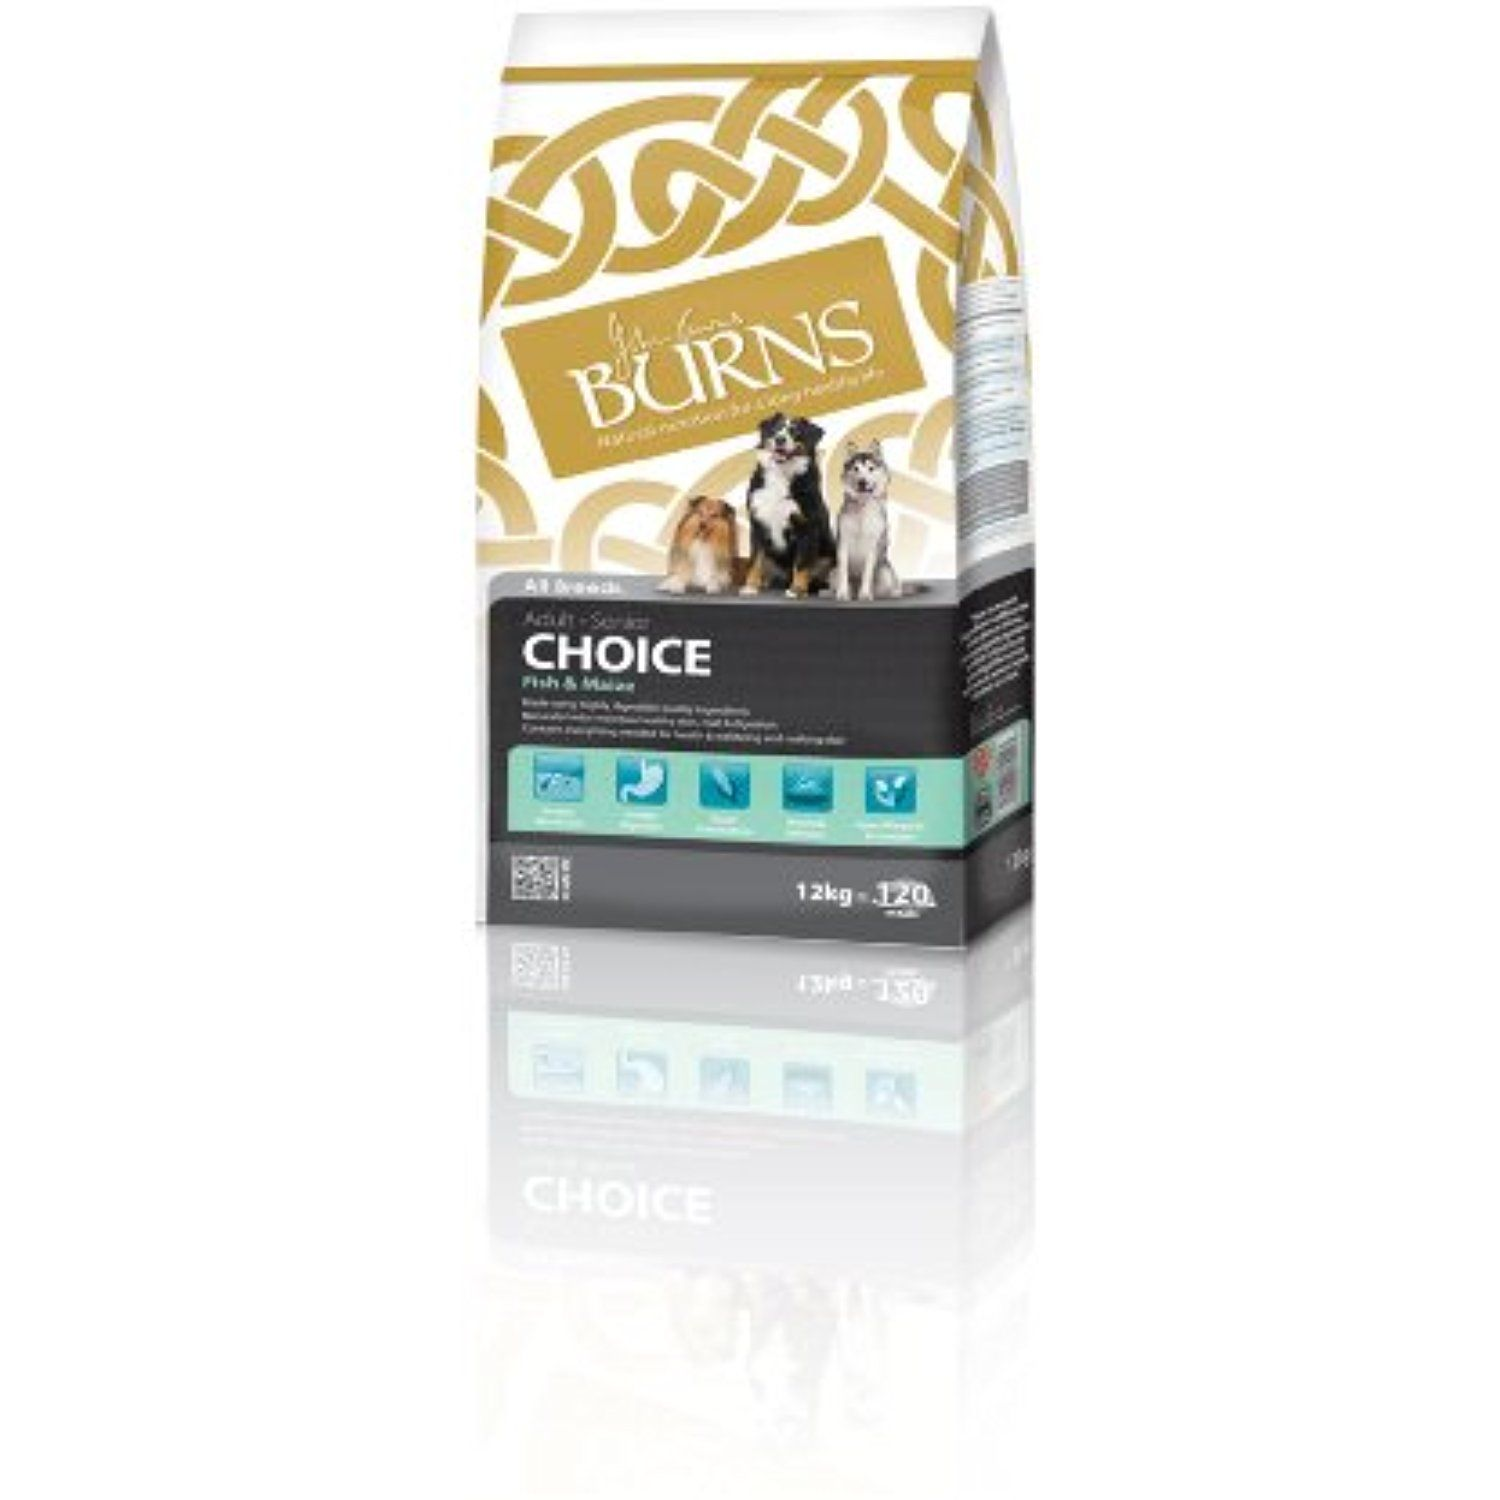 Burns Fish Choice 6 Kg You Could Find More Details By Visiting